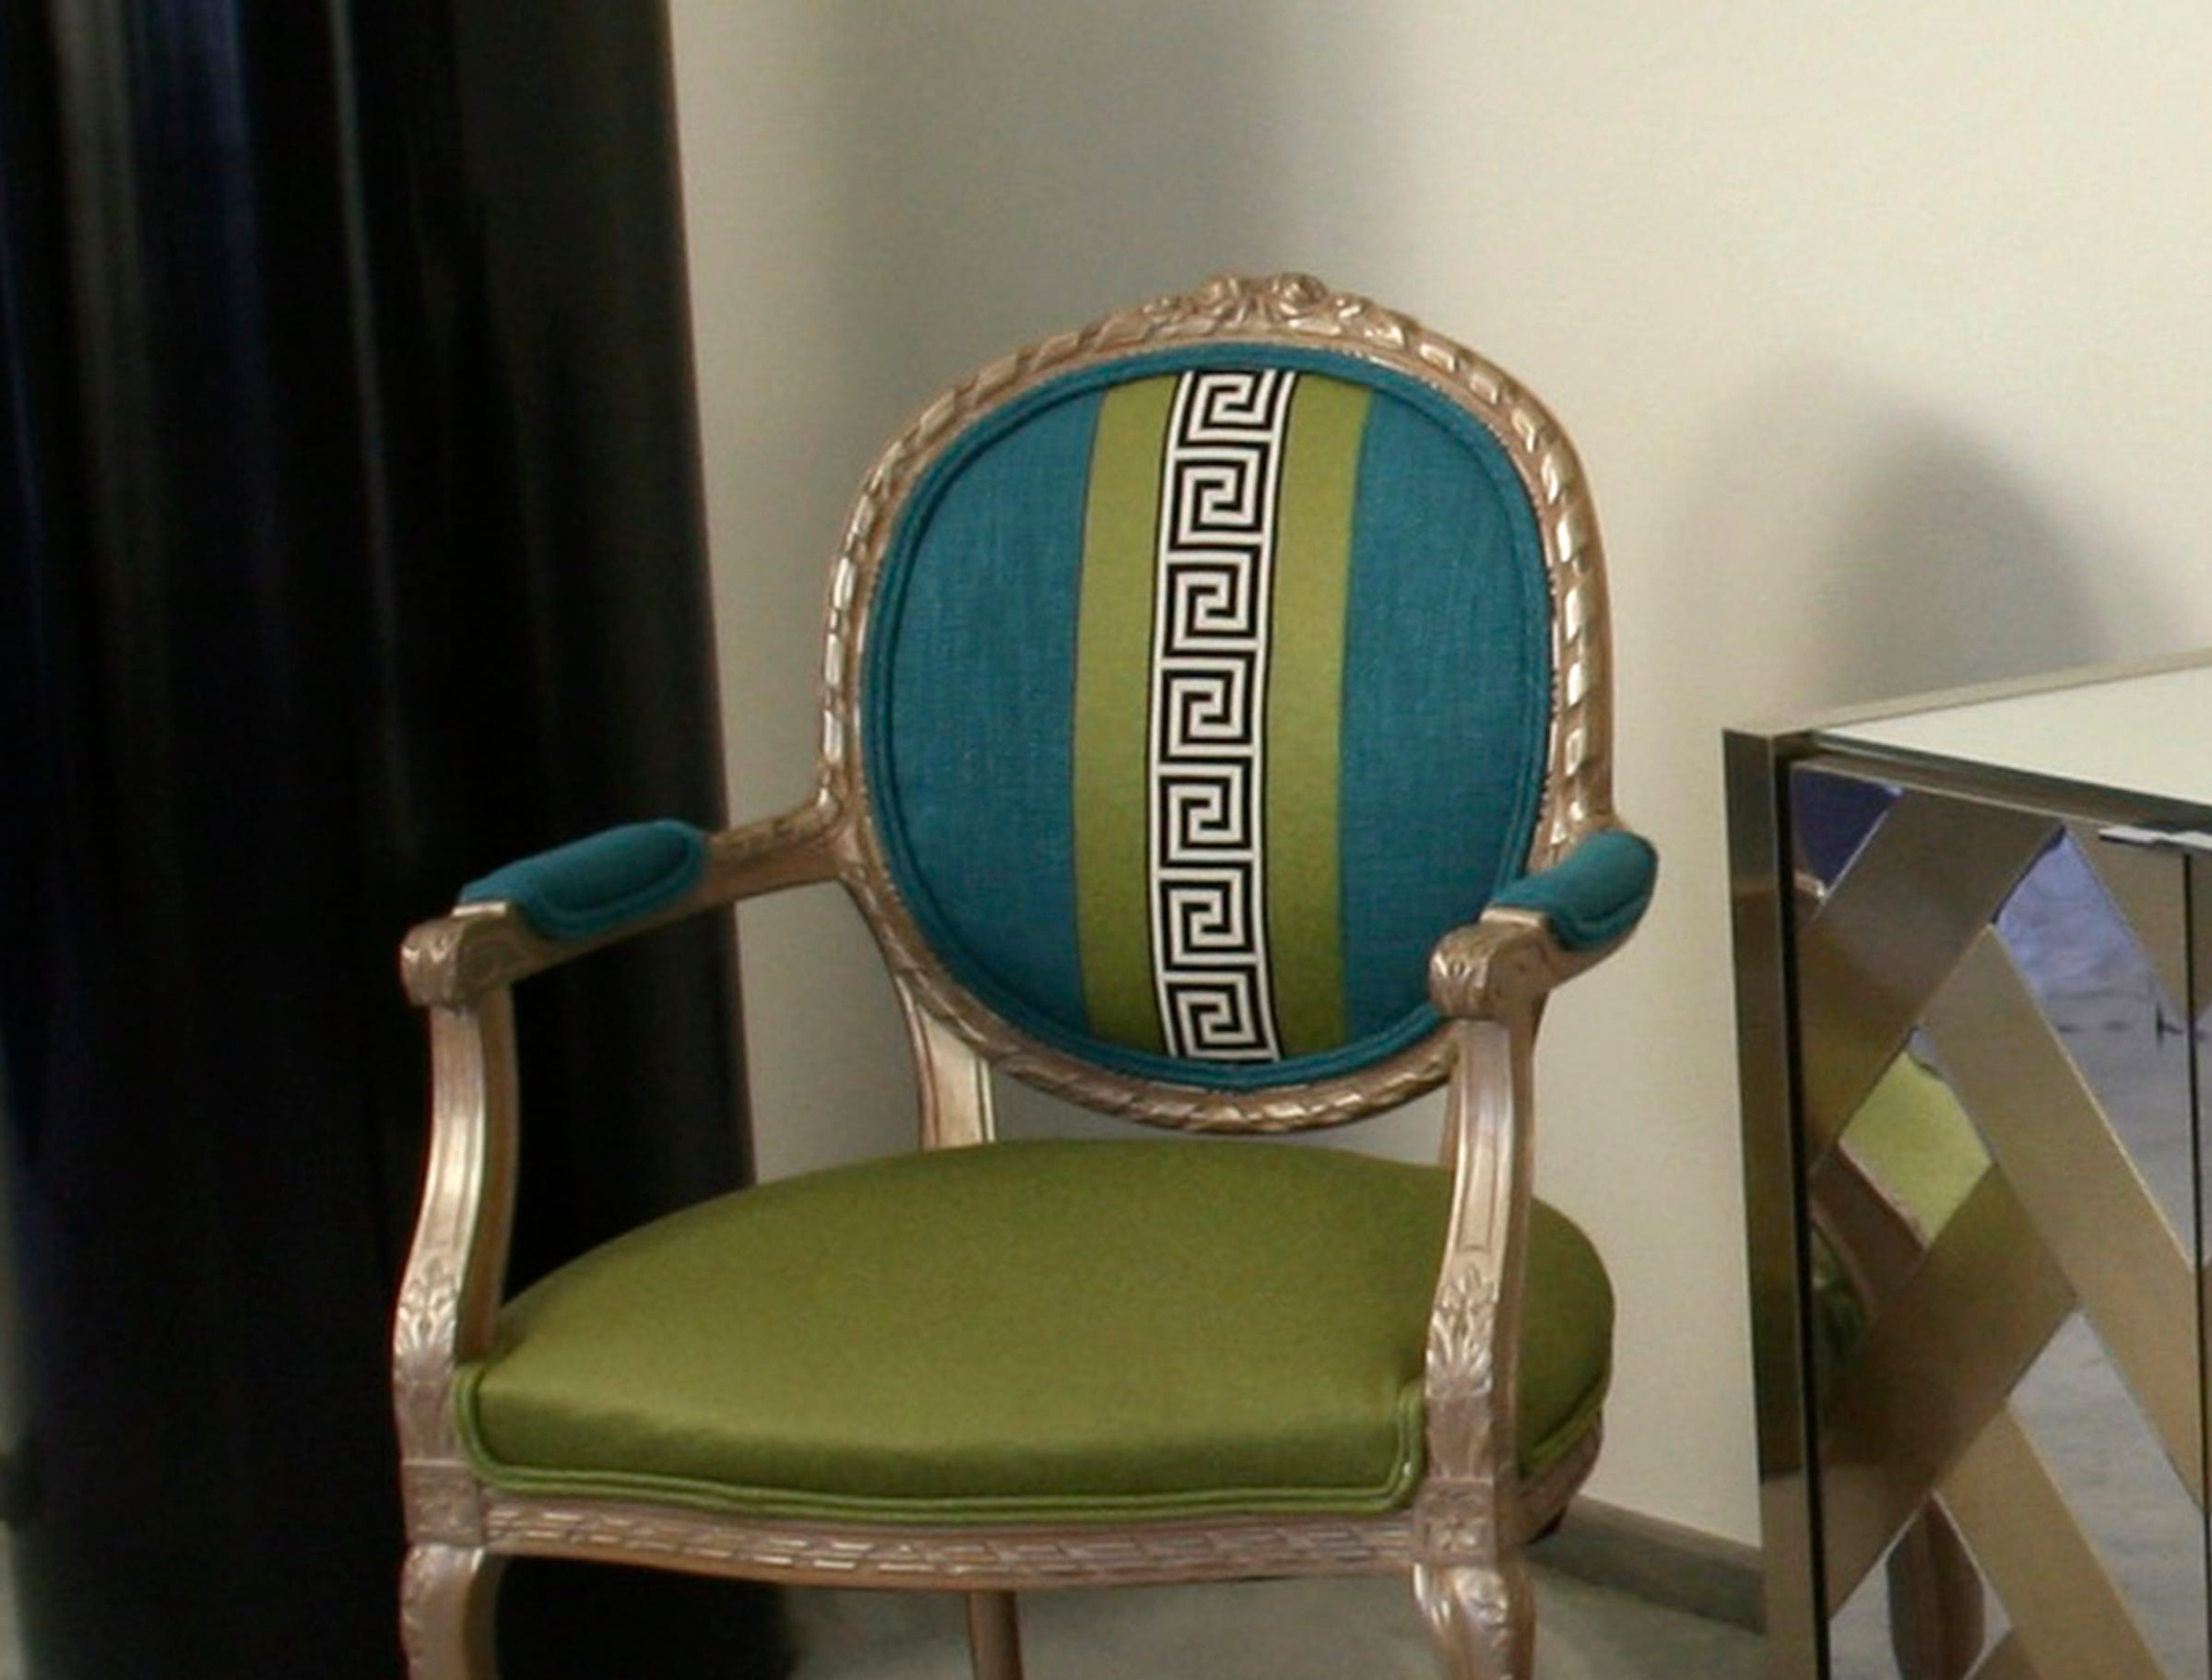 For around $500, a vintage chair can be reinvented with some new upholstery.